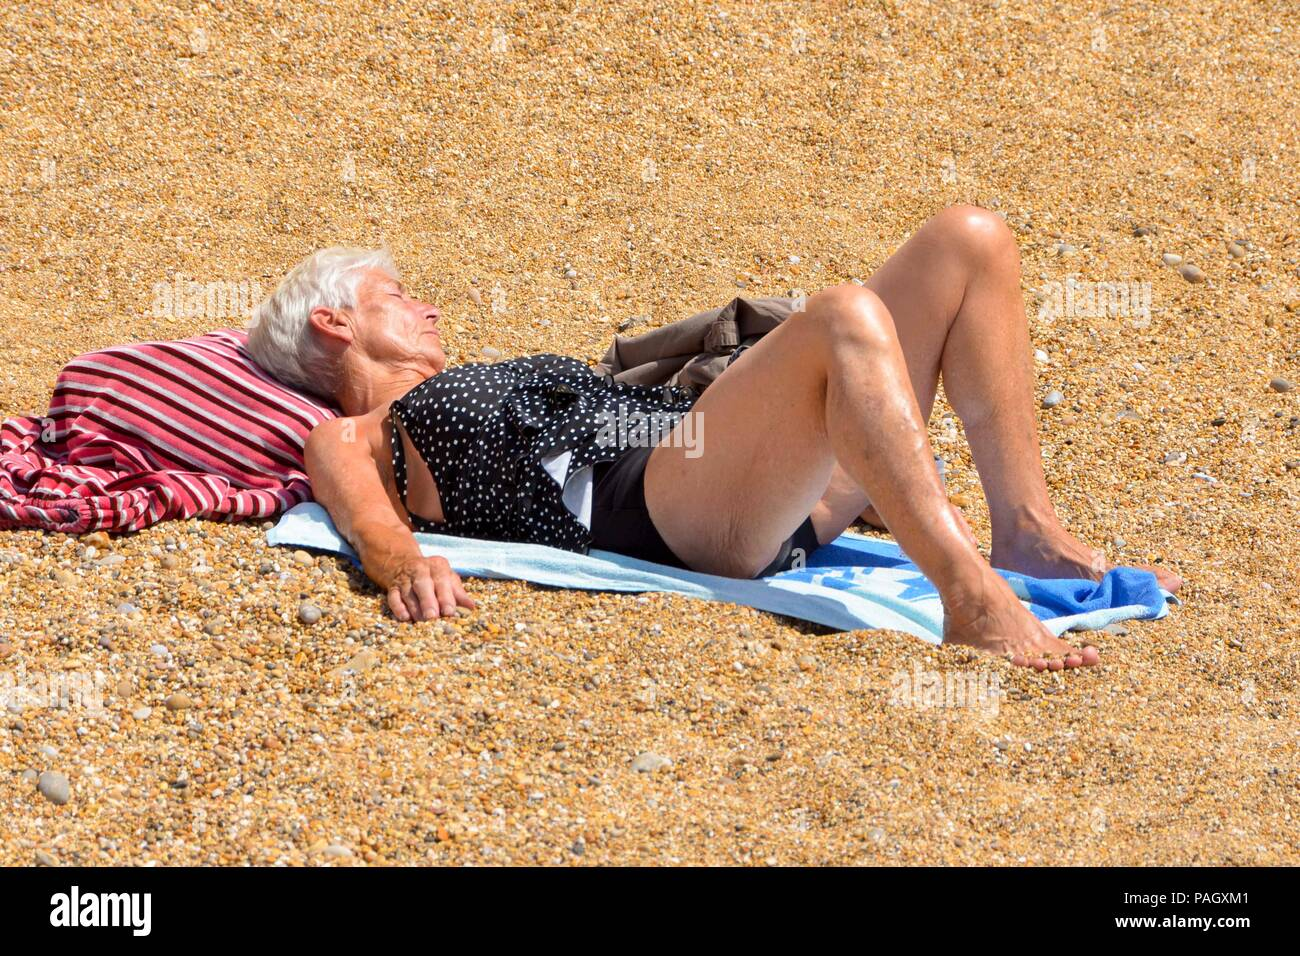 West Bay, Dorset, UK.  23rd July 2018. UK Weather.   A sunbather on the beach enjoying the hot sunshine at the seaside resort of West Bay in Dorset.  Picture Credit: Graham Hunt/Alamy Live News - Stock Image